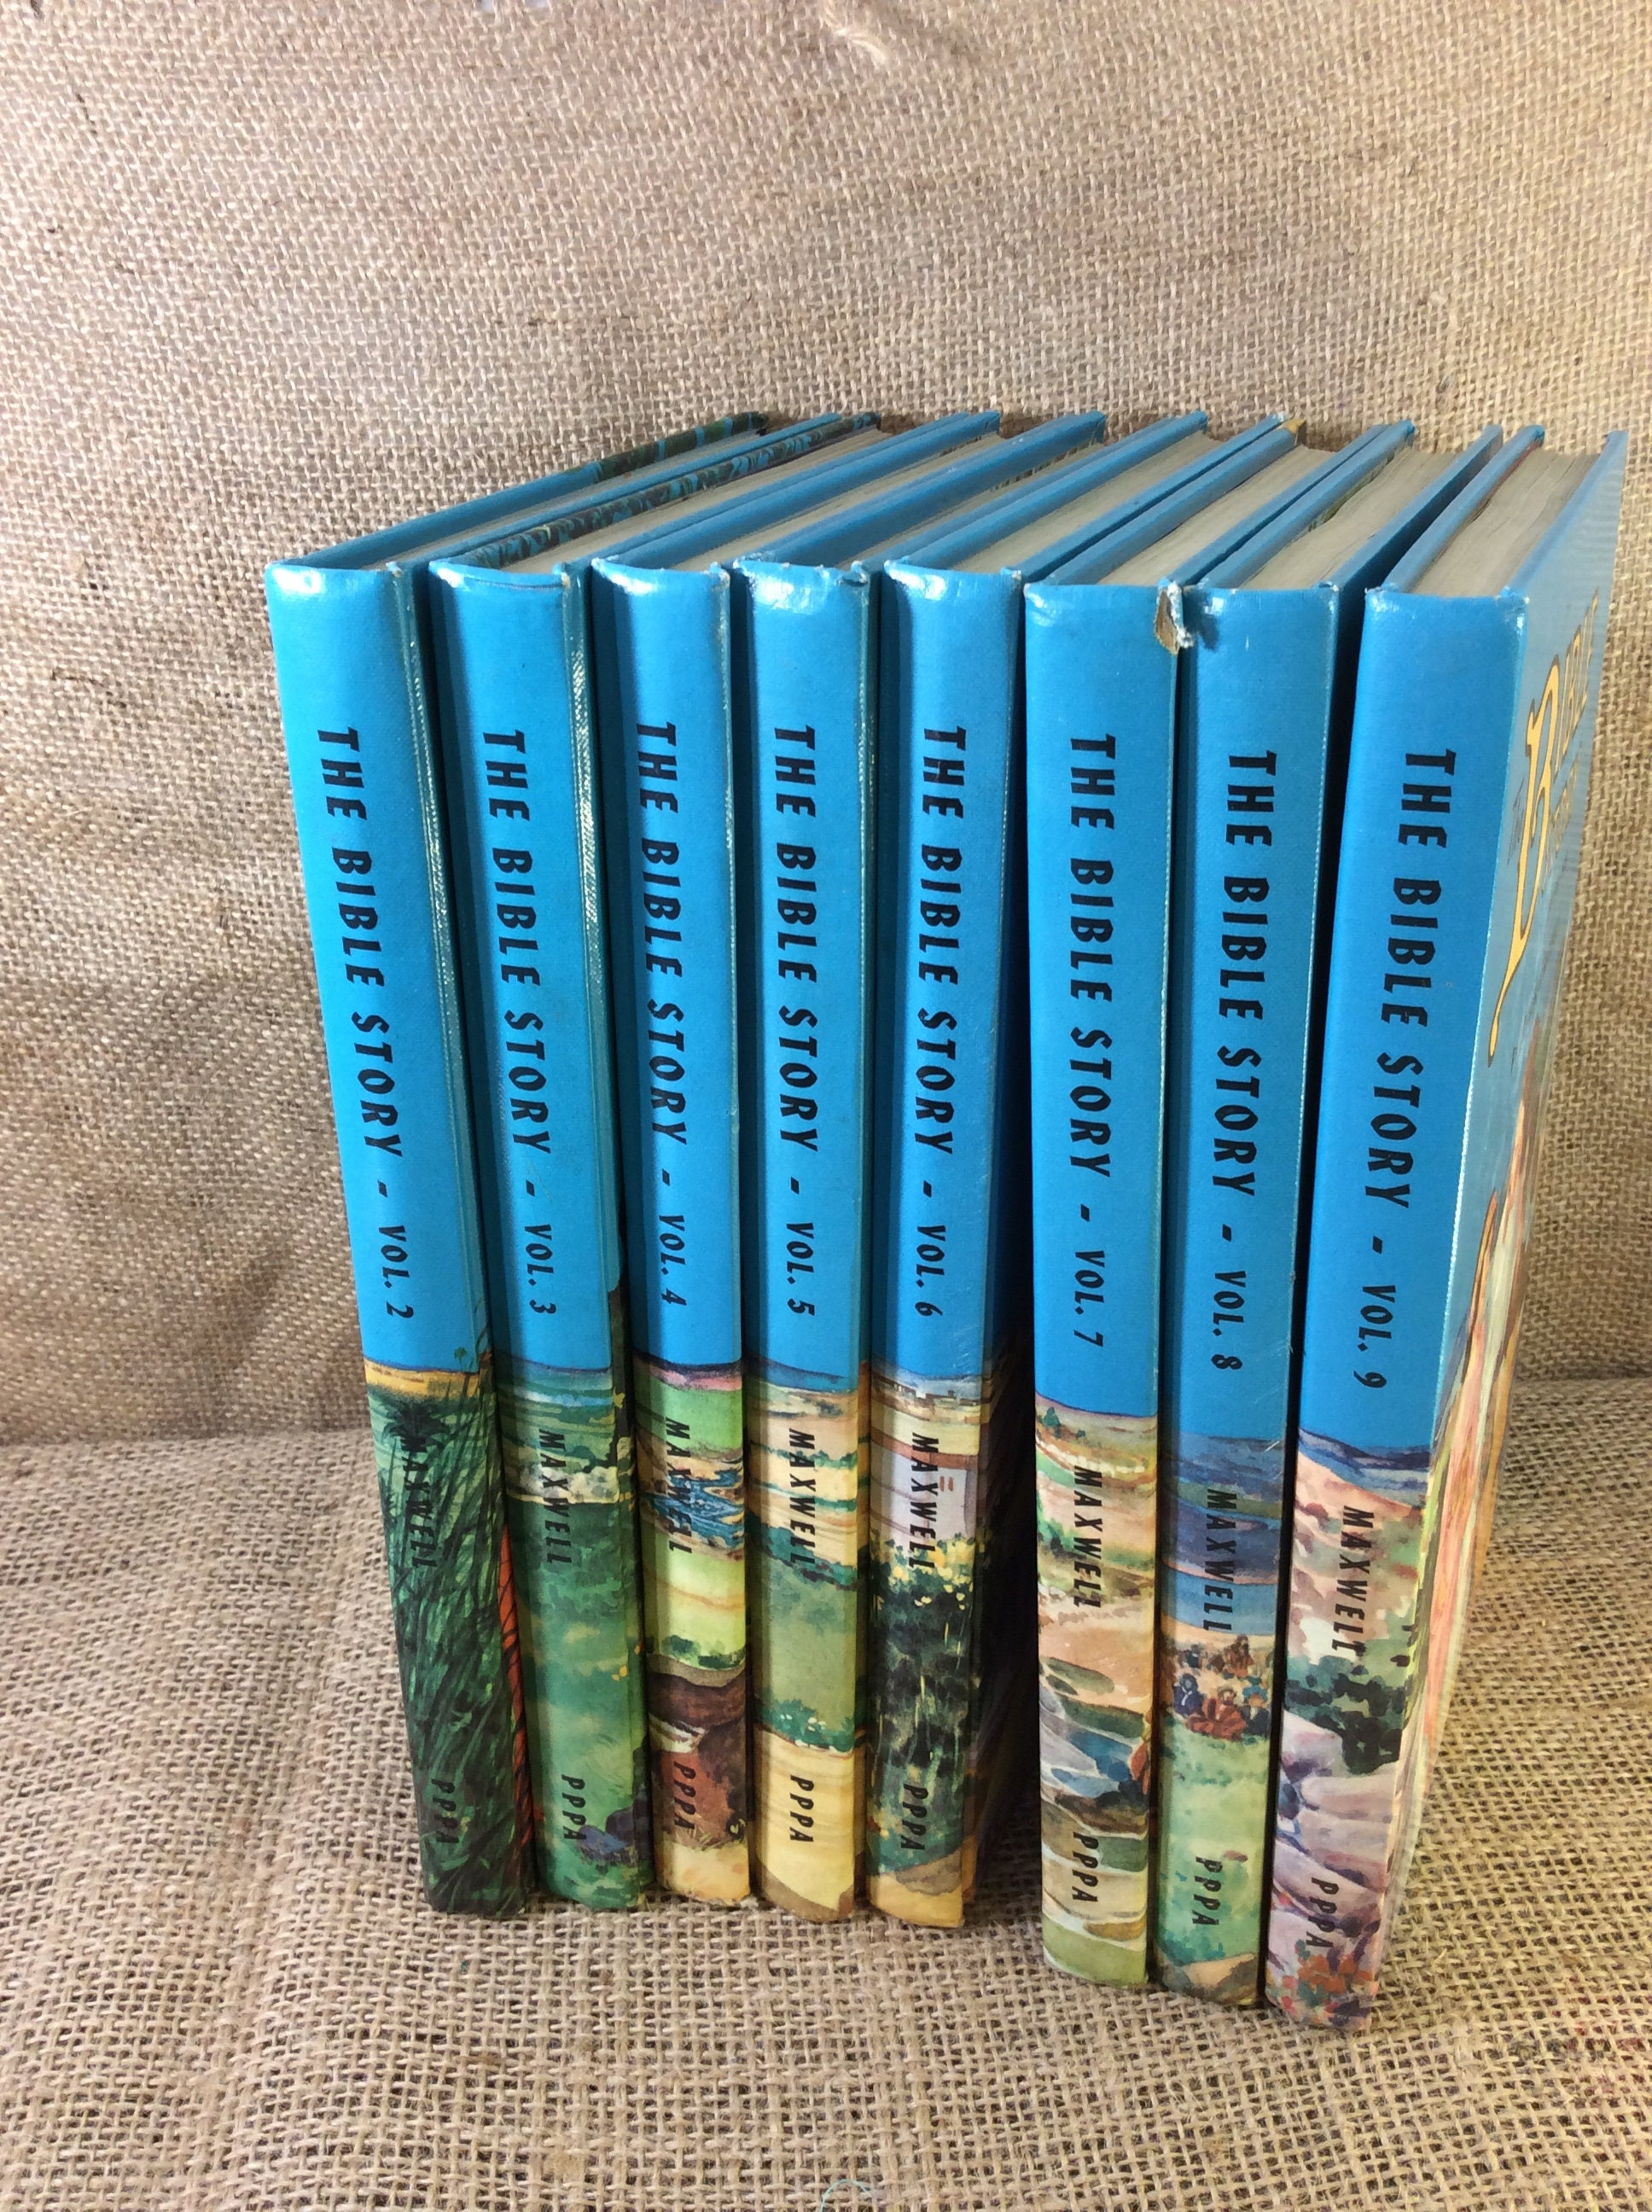 The Bible Story from 1954 Arthur Maxwell volumes 2-9 available, sold